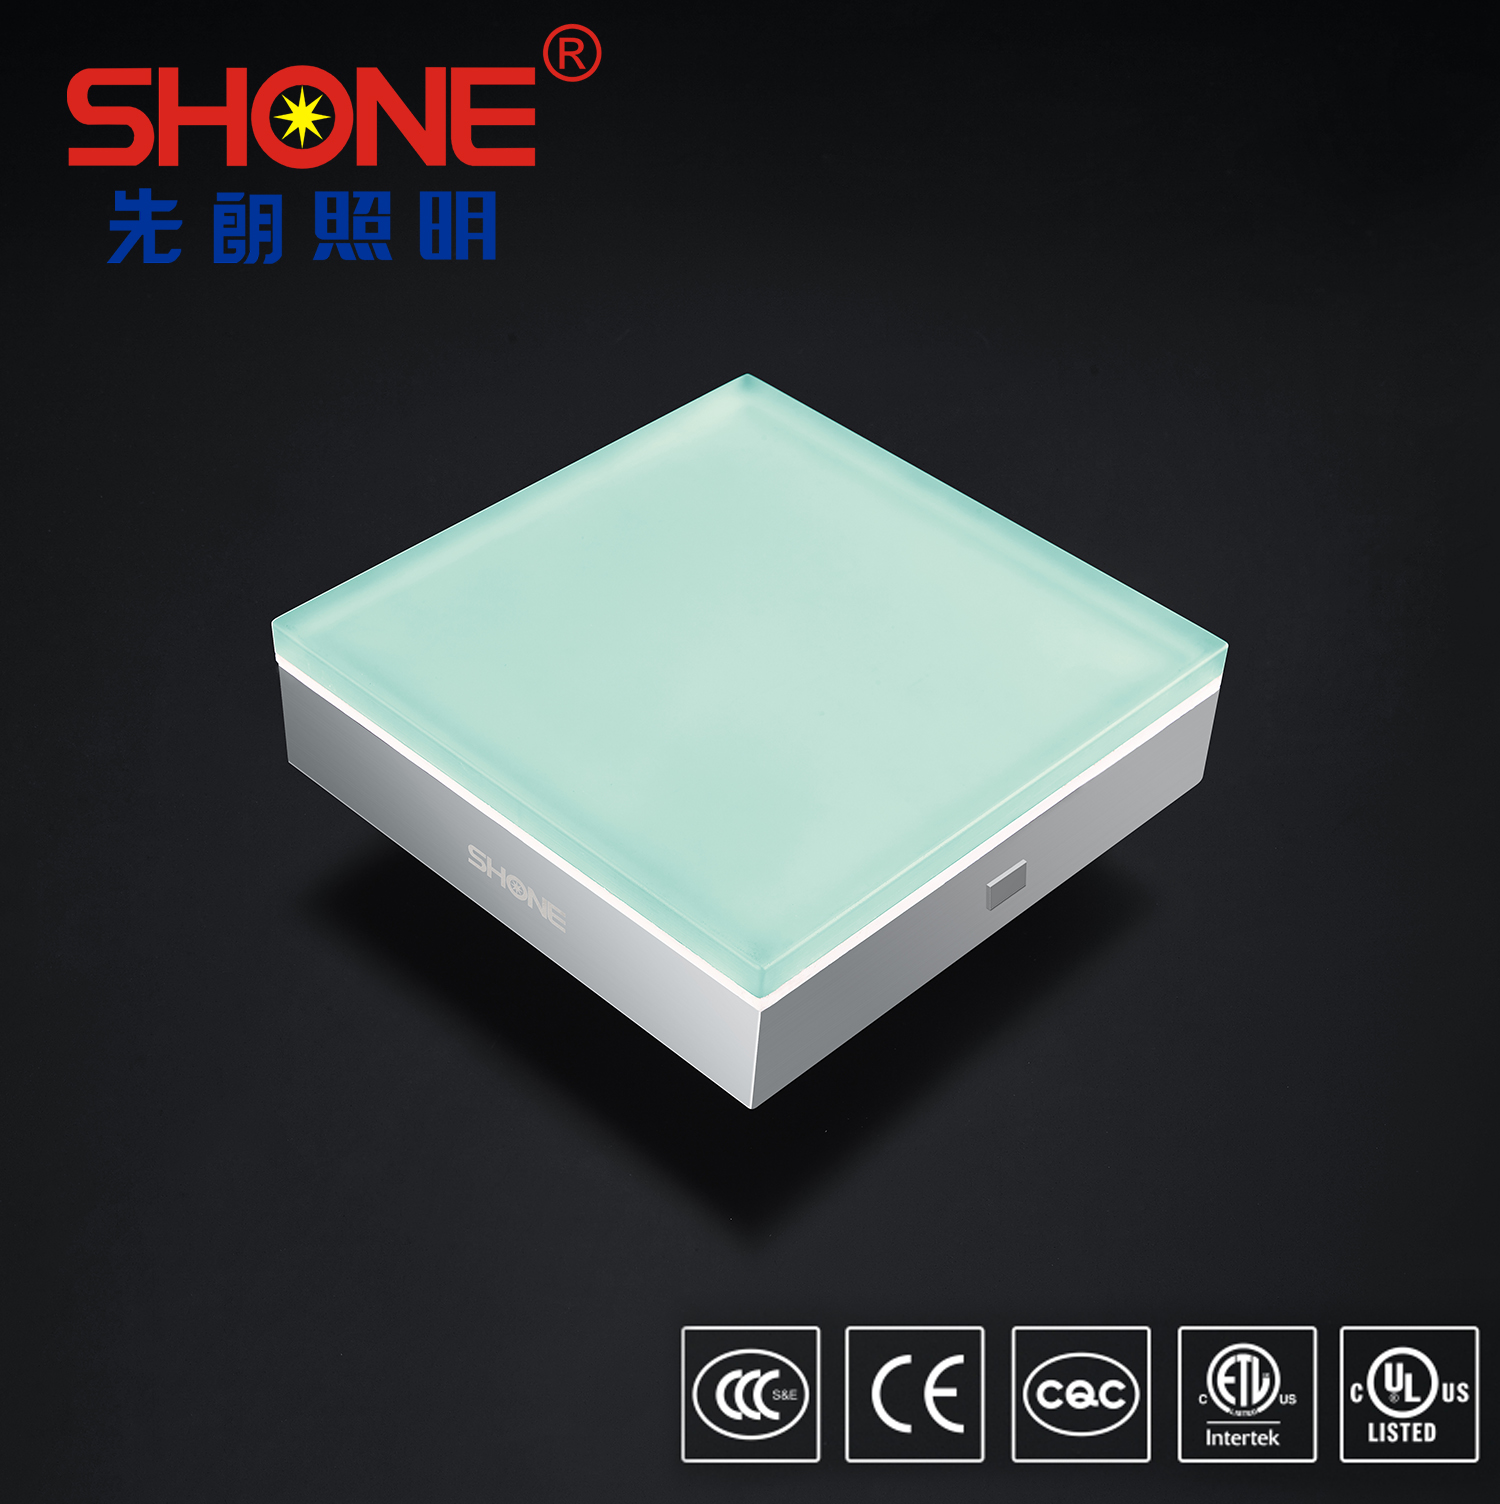 Shone Lighting 200x200 Square LED Brick LED Tile Light IP68 for Outdoor Lighting